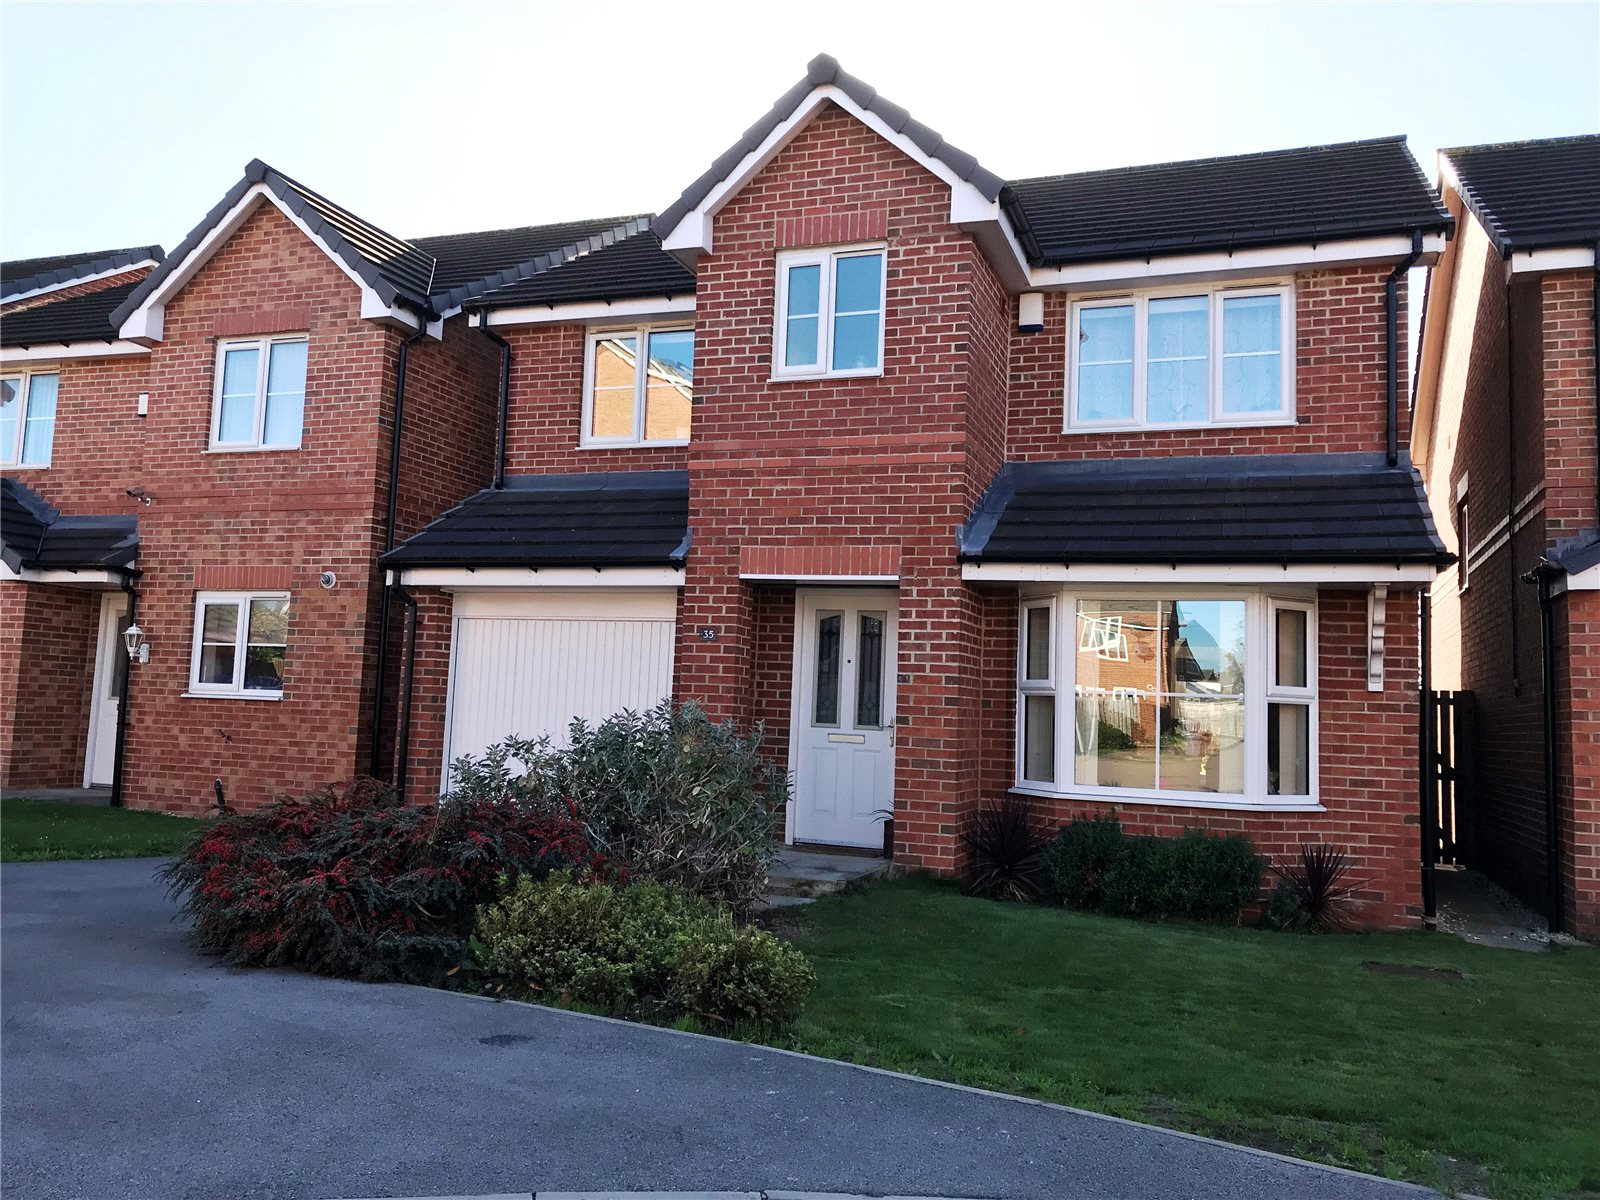 Property for sale in Wakefield, exterior of red brick house